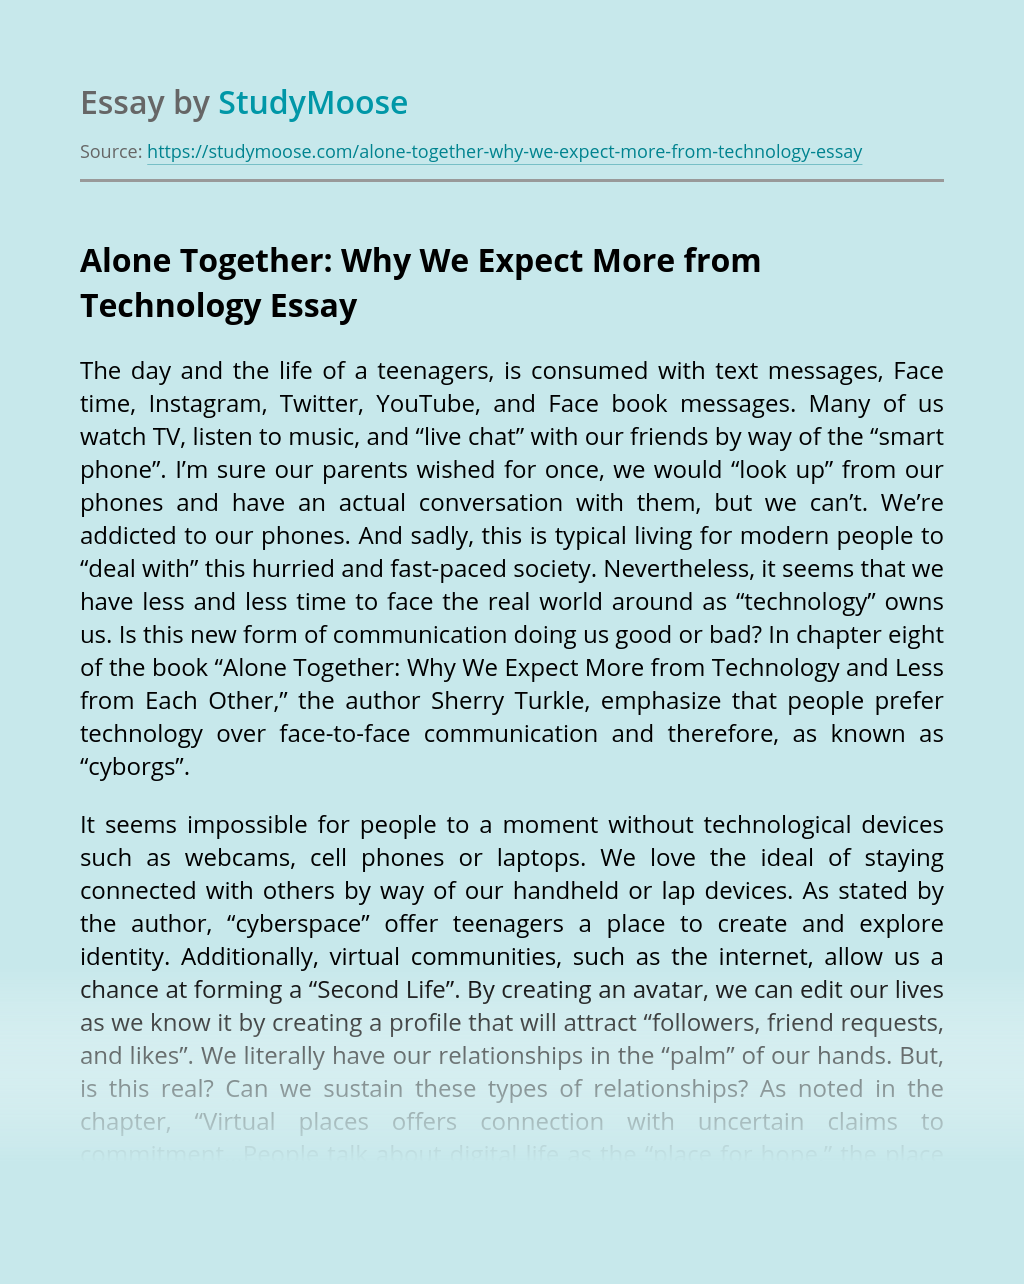 Alone Together: Why We Expect More from Technology